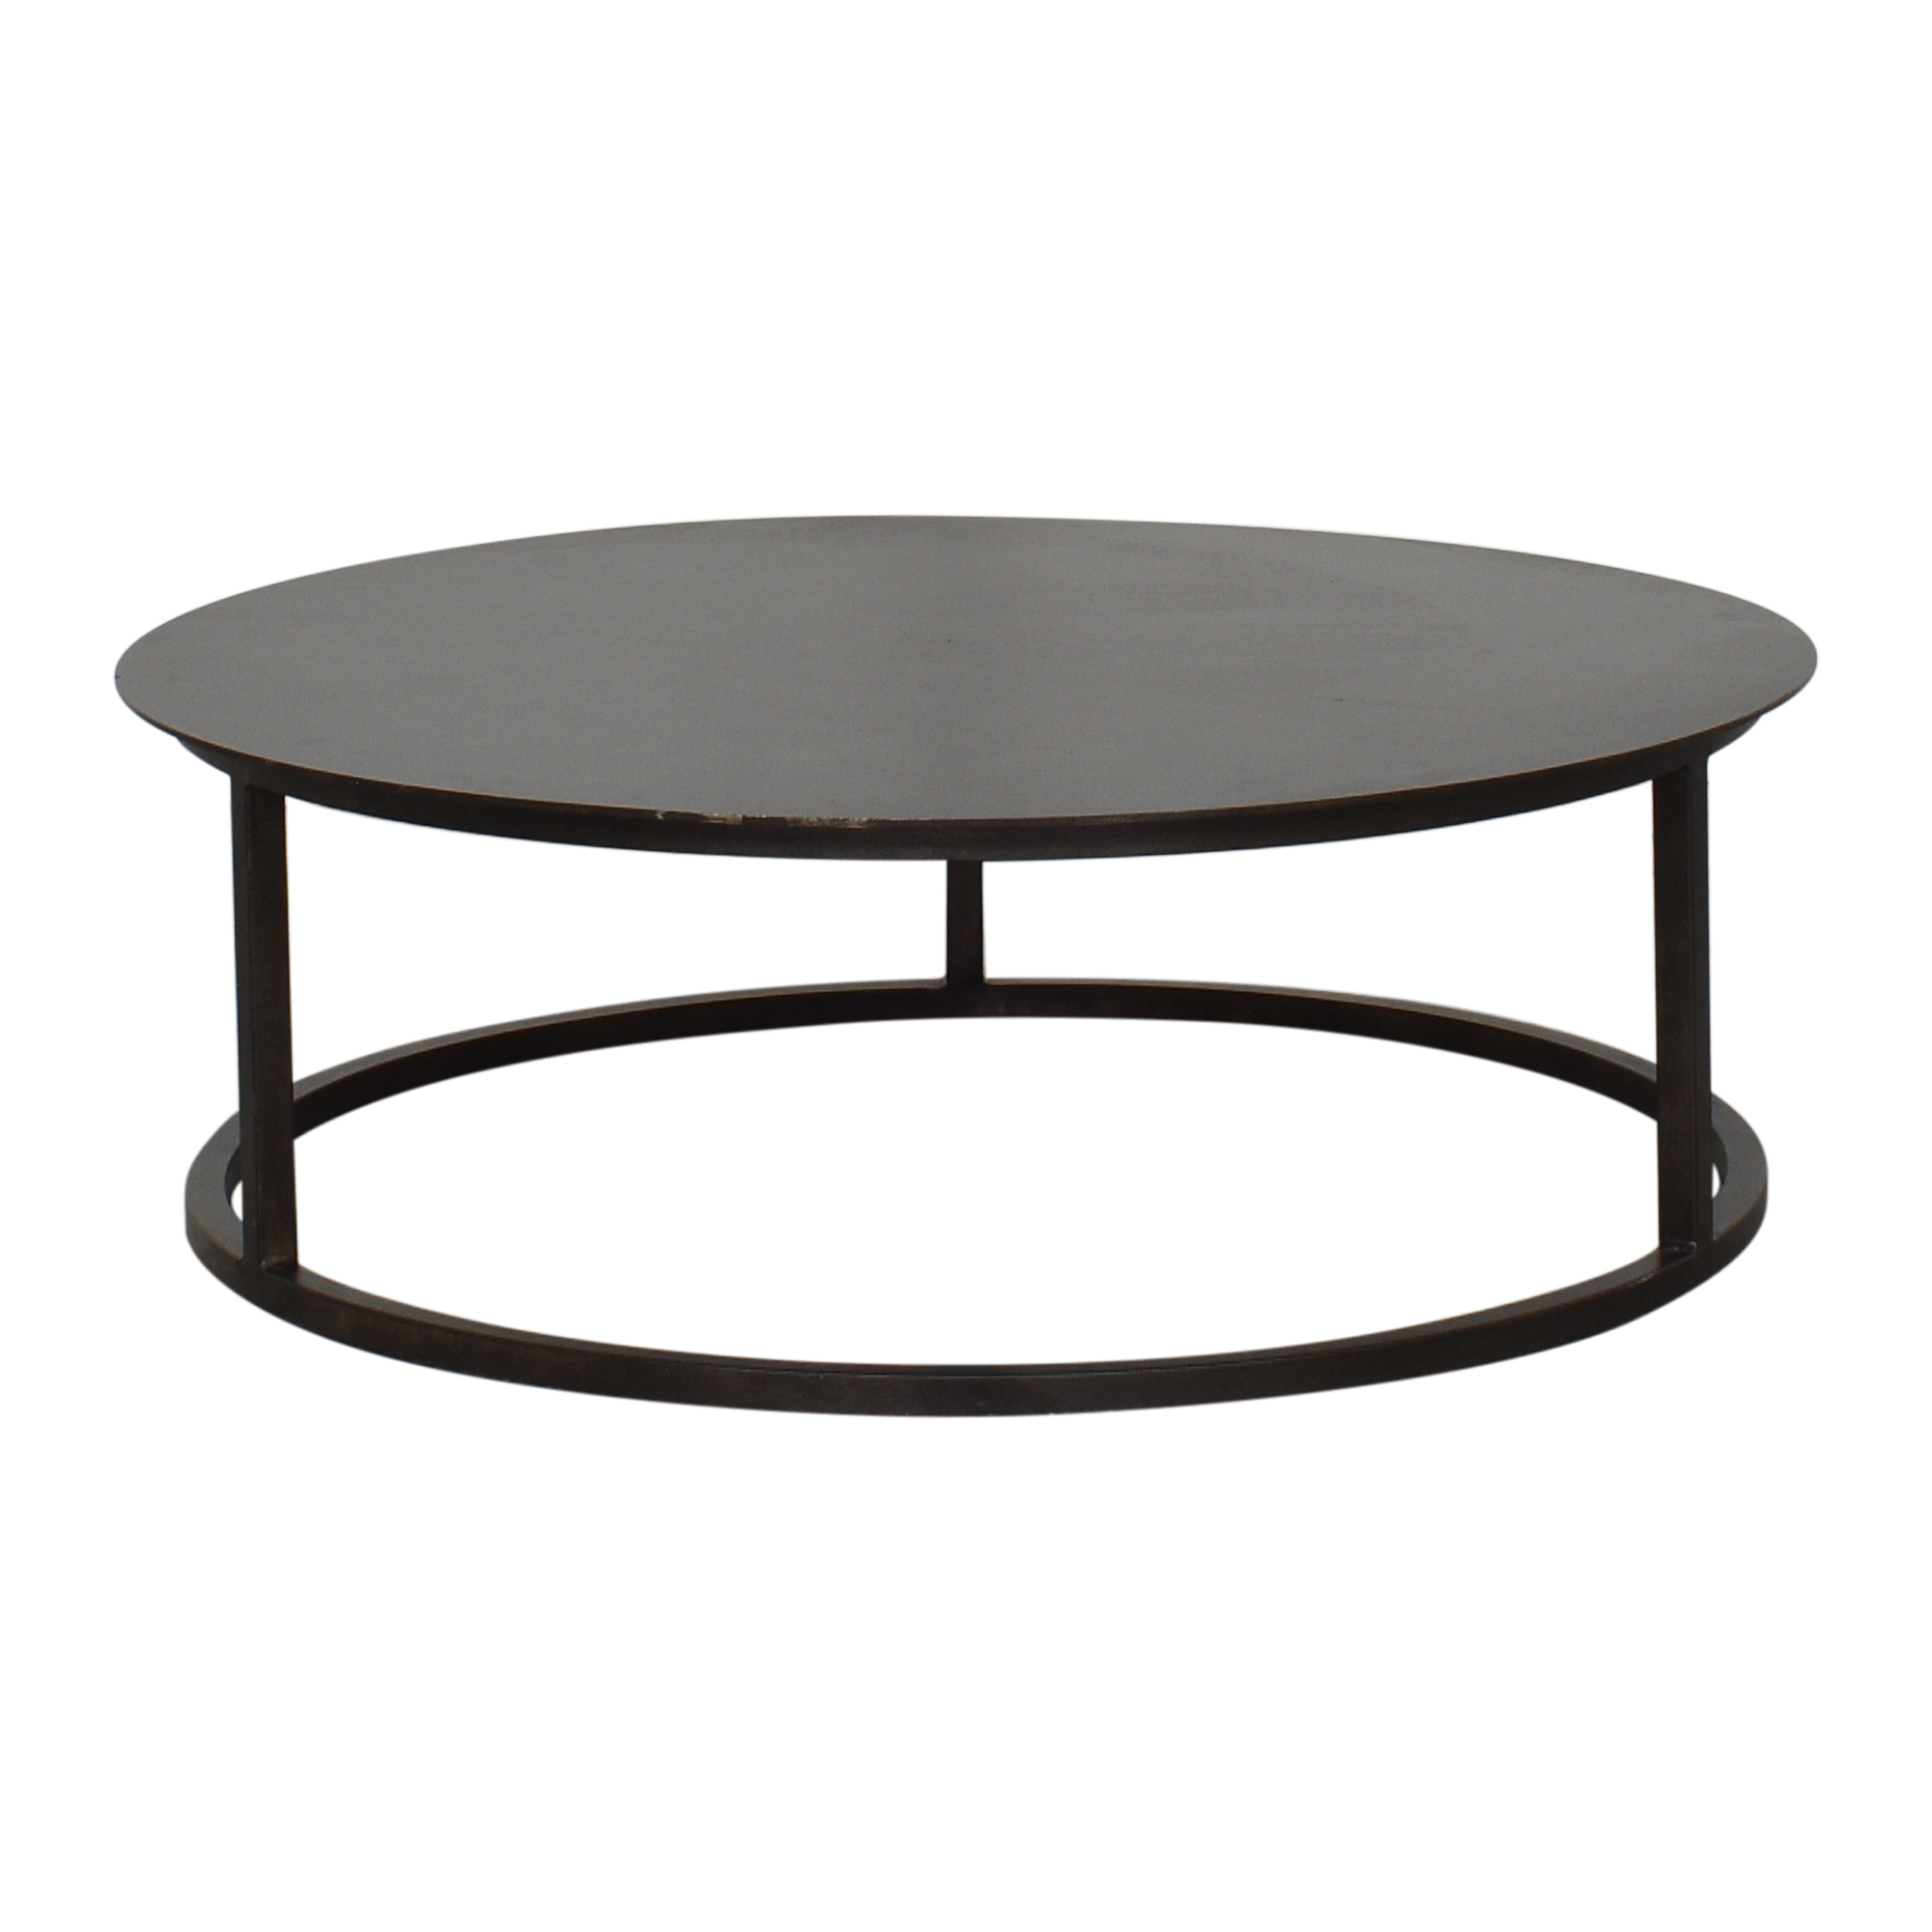 Restoration Hardware Mercer Round Coffee Table / Tables